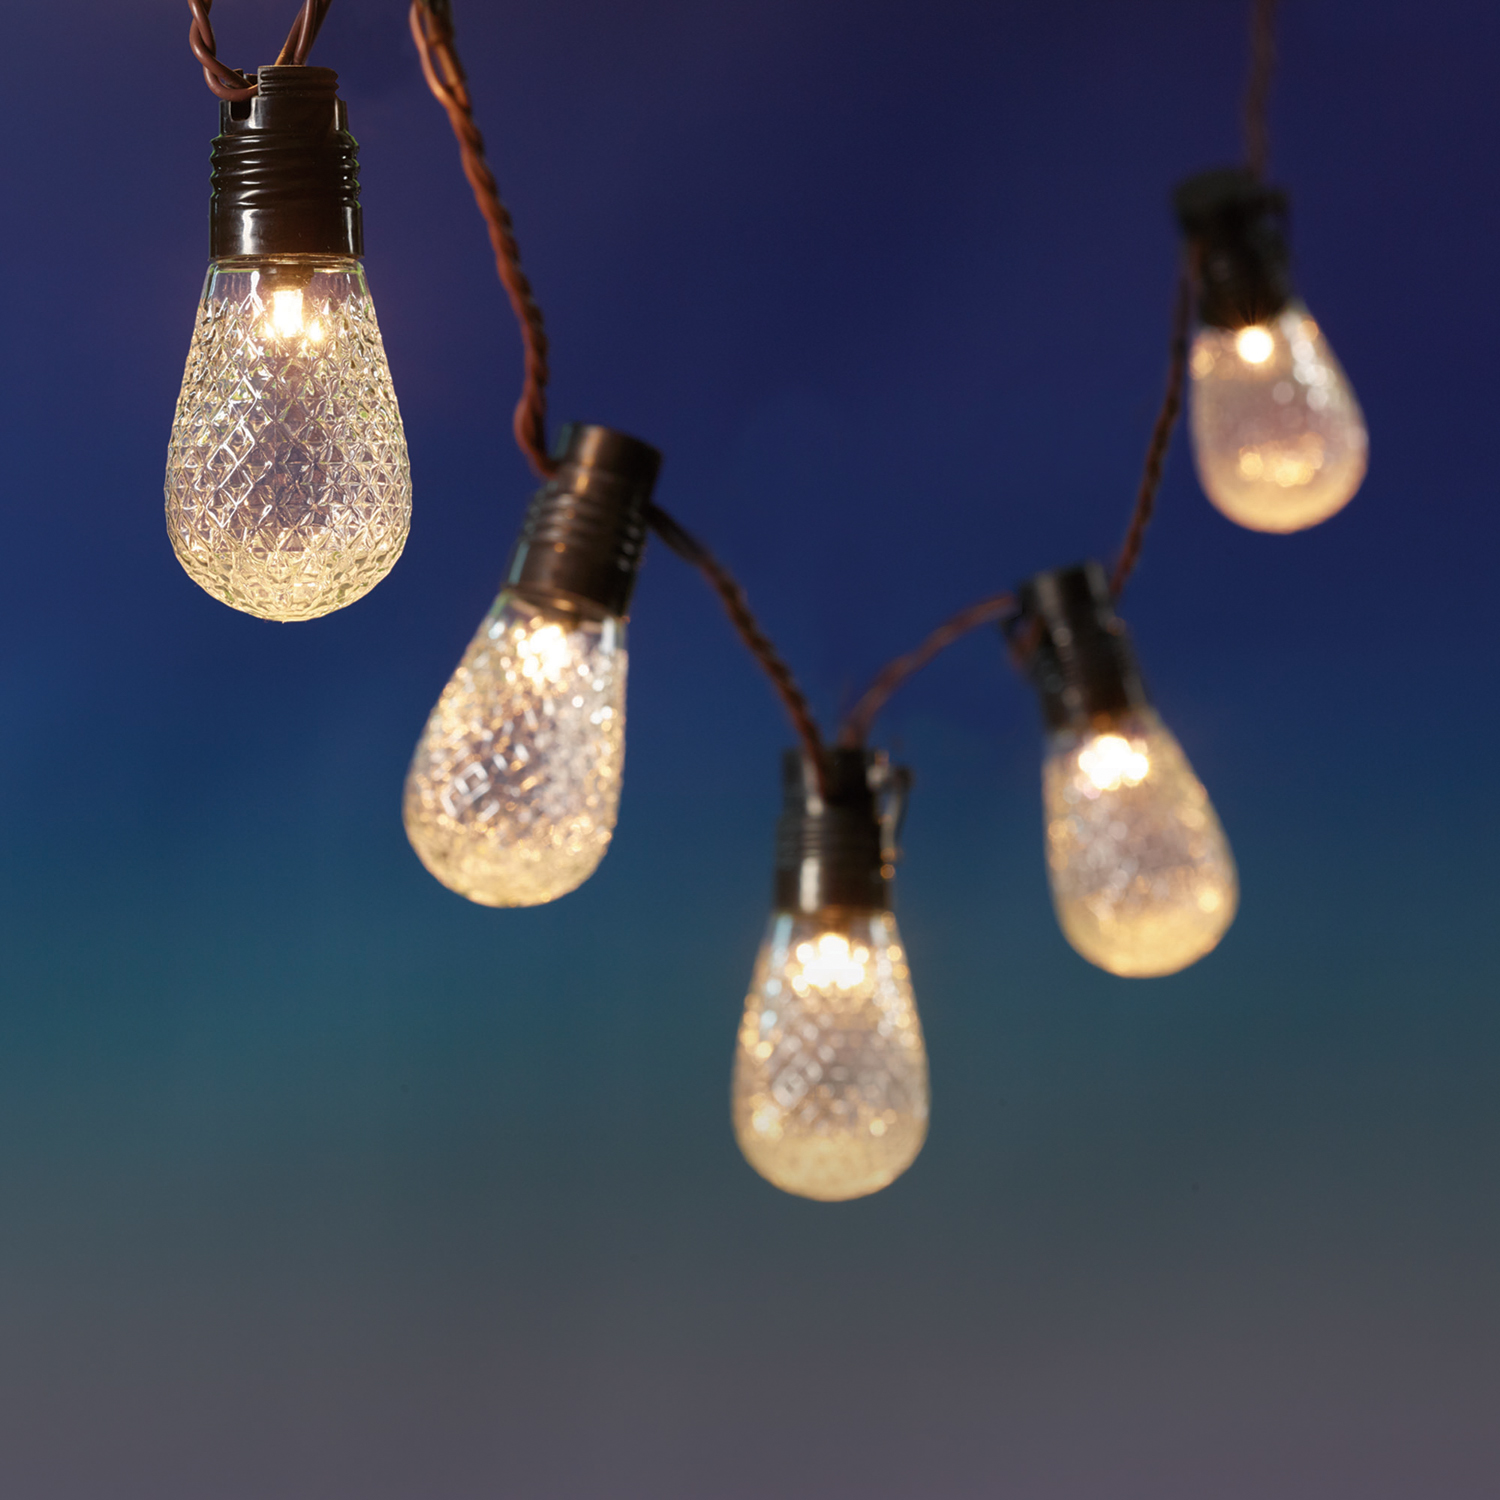 10ct String to String LED Vintage Light Set